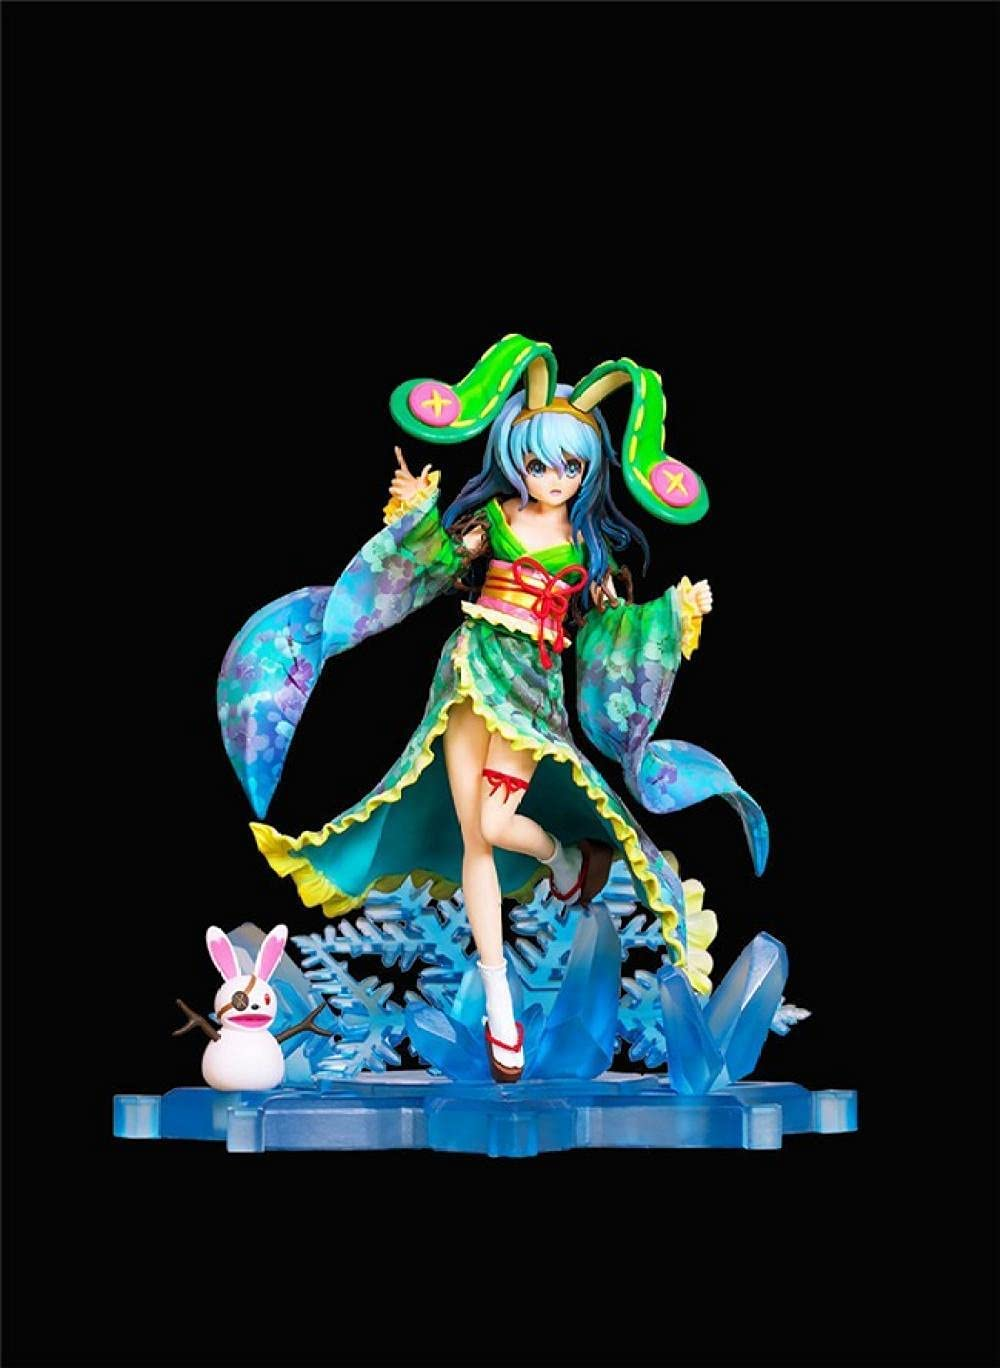 Statues Minneapolis Mall Figures Popular brand in the world Anime Character Dating 24Cm Yoshino Model